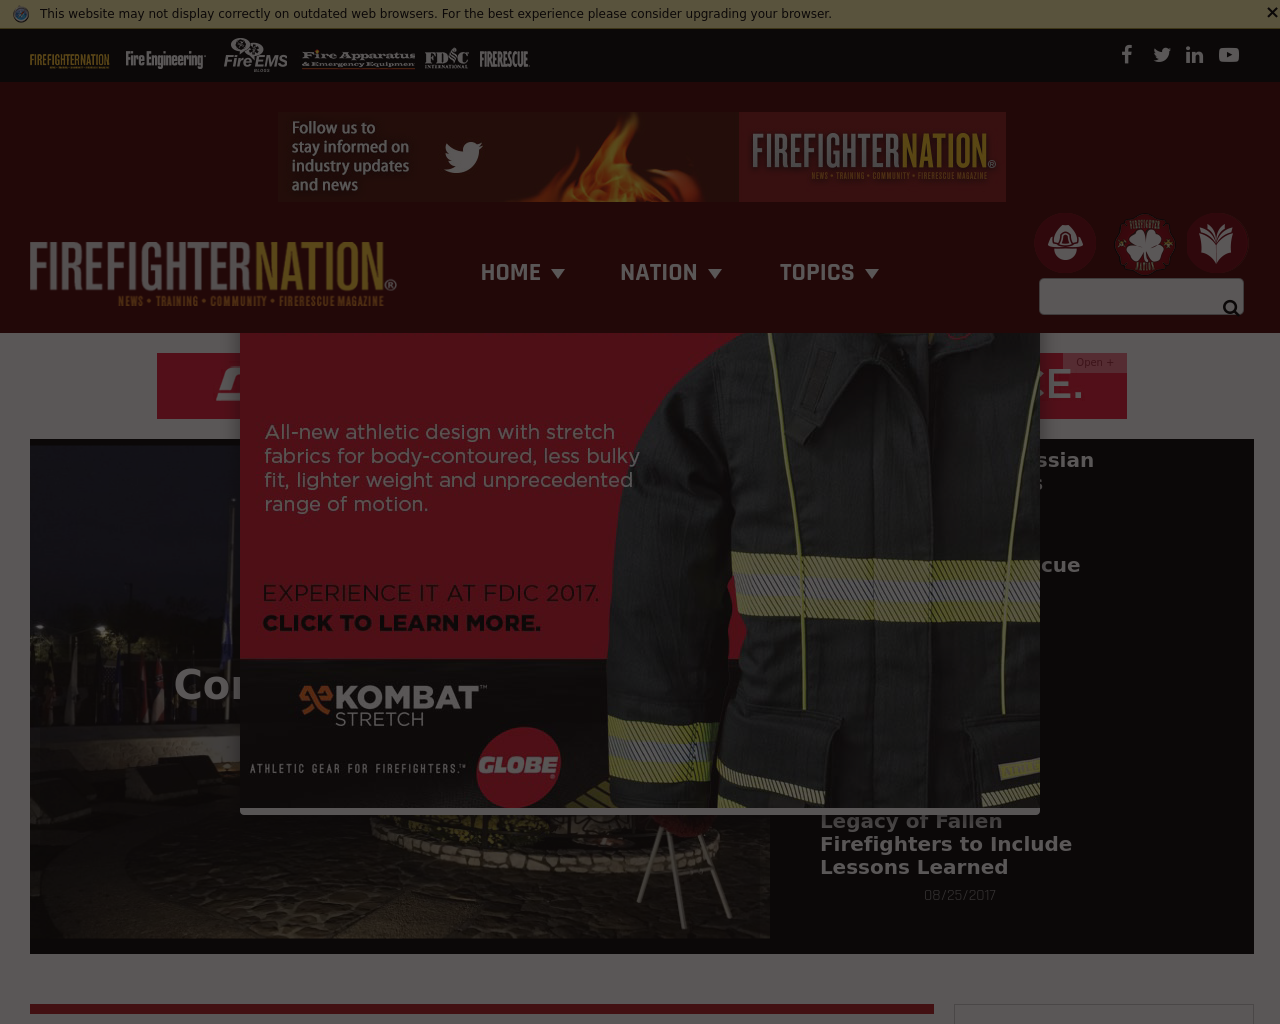 Firefighter-Nation-Advertising-Reviews-Pricing